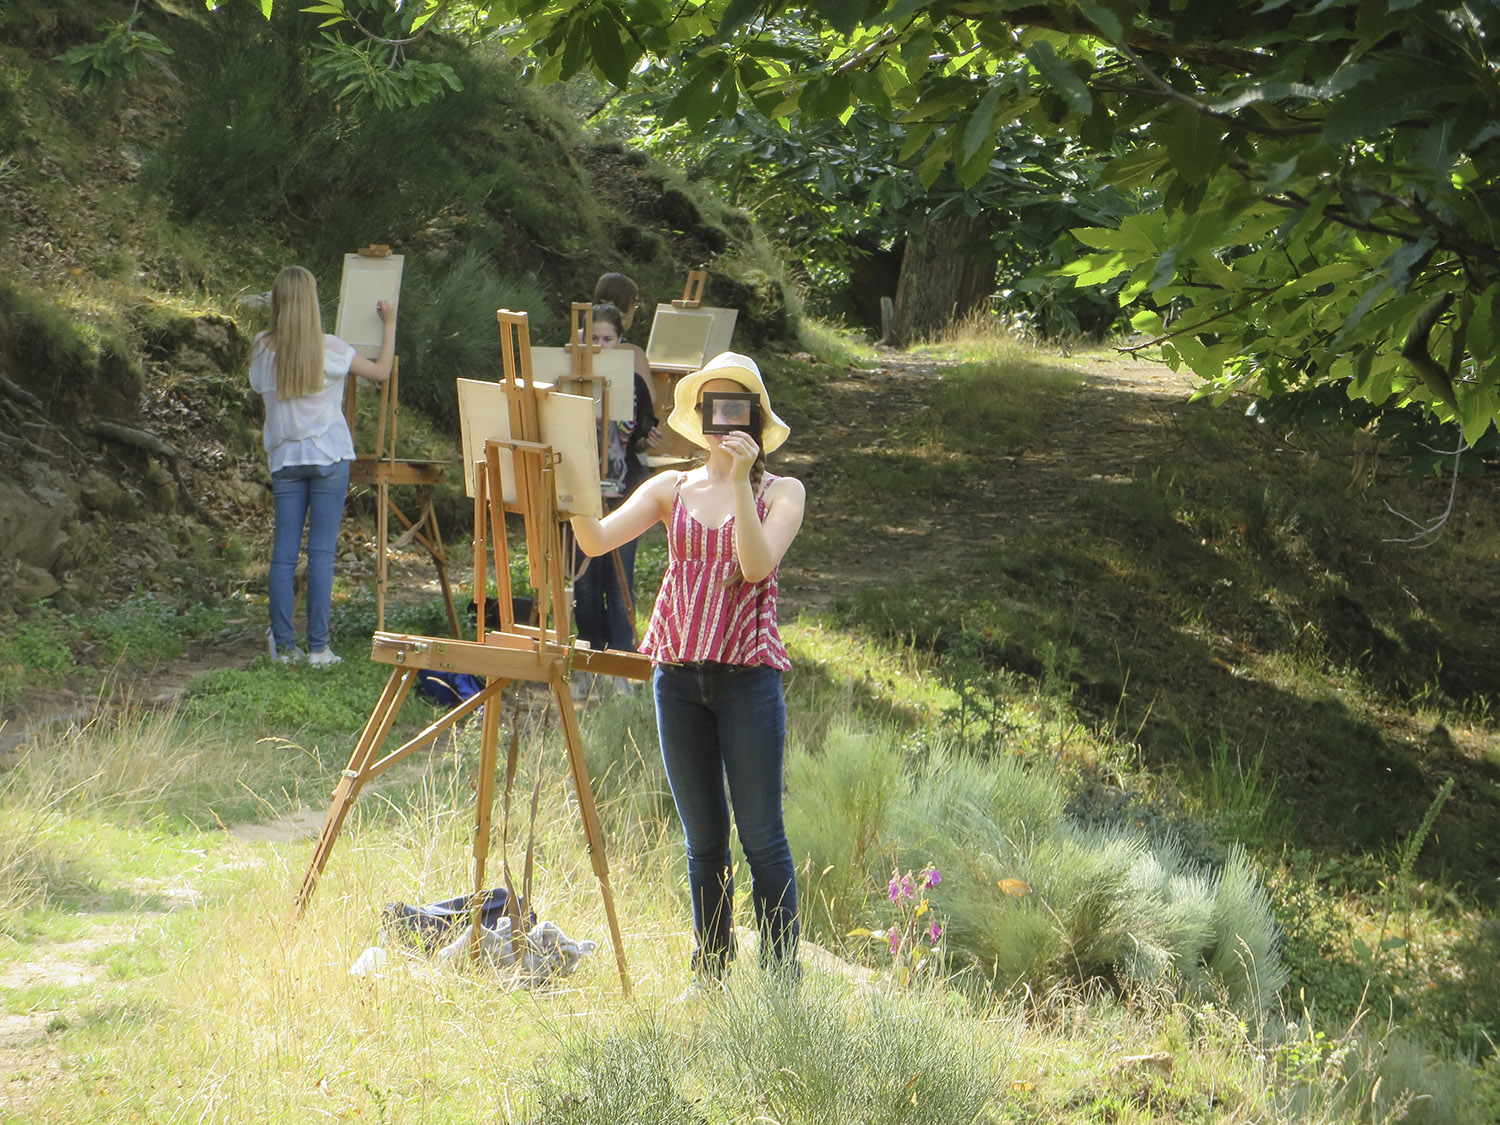 les tapies painting students working in the landscape